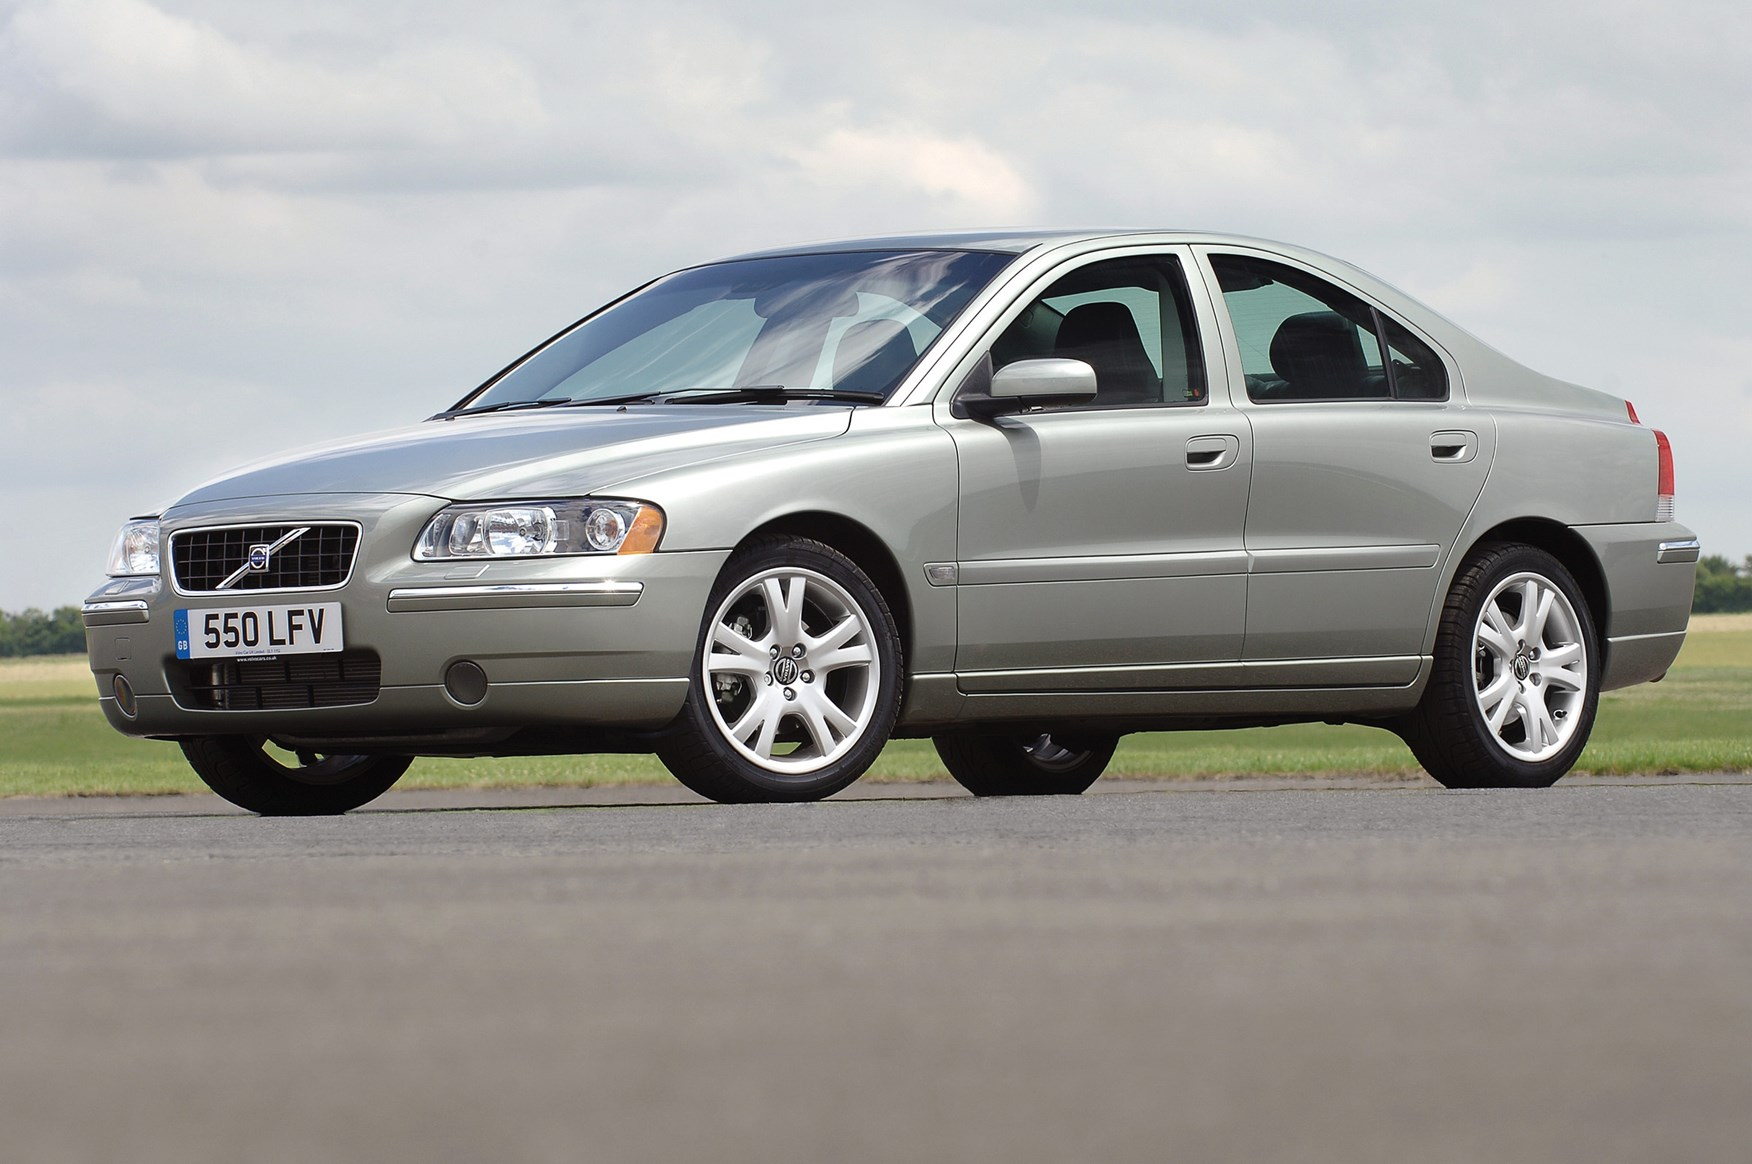 volvo s60 saloon review 2000 2008 parkers. Black Bedroom Furniture Sets. Home Design Ideas